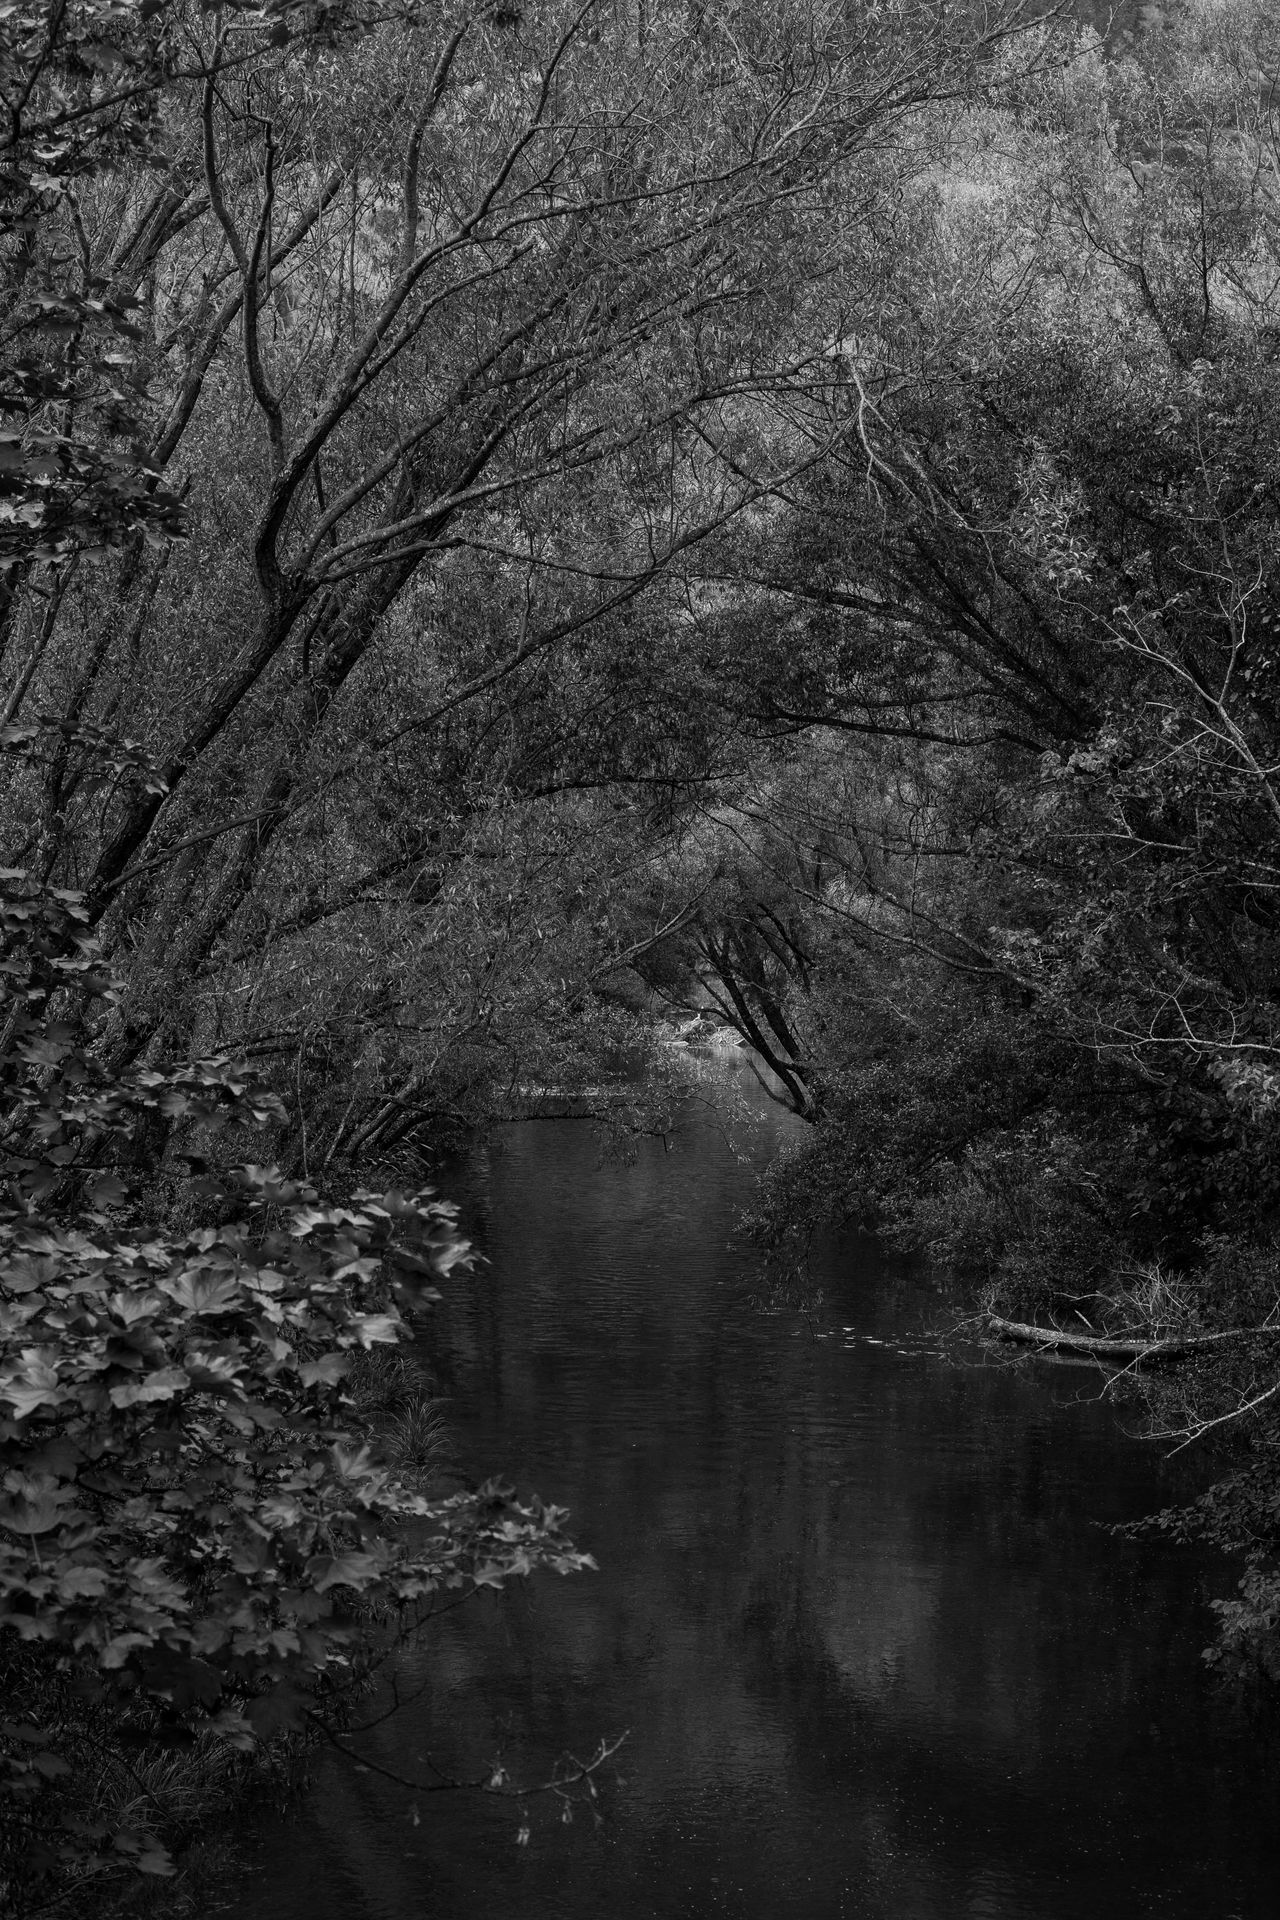 Beauty In Nature Blackandwhite Bw_collection Calm Canon Day Field Forest Grass Growth House Landscape Lush - Description Maitai Nature No People Non-urban Scene Outdoor Photography Outdoors River Scenics Sky Tranquility EyeEmNewHere